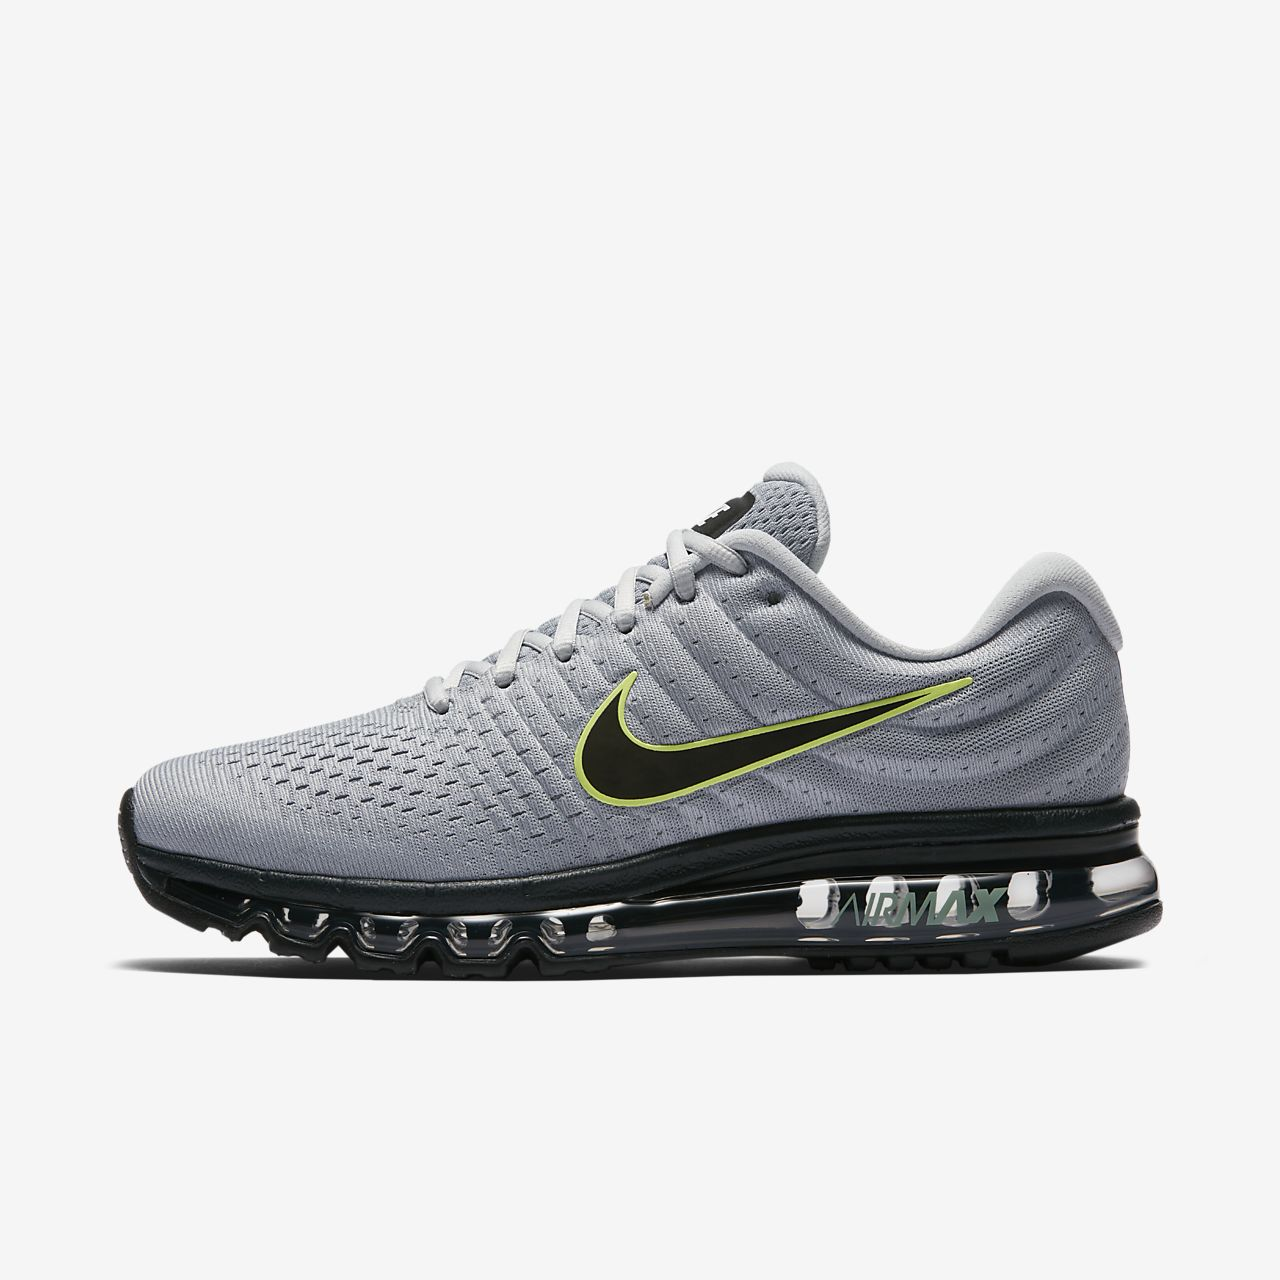 3fe1ecf39c Nike Air Max 2017 Men's Shoe. Nike.com AU